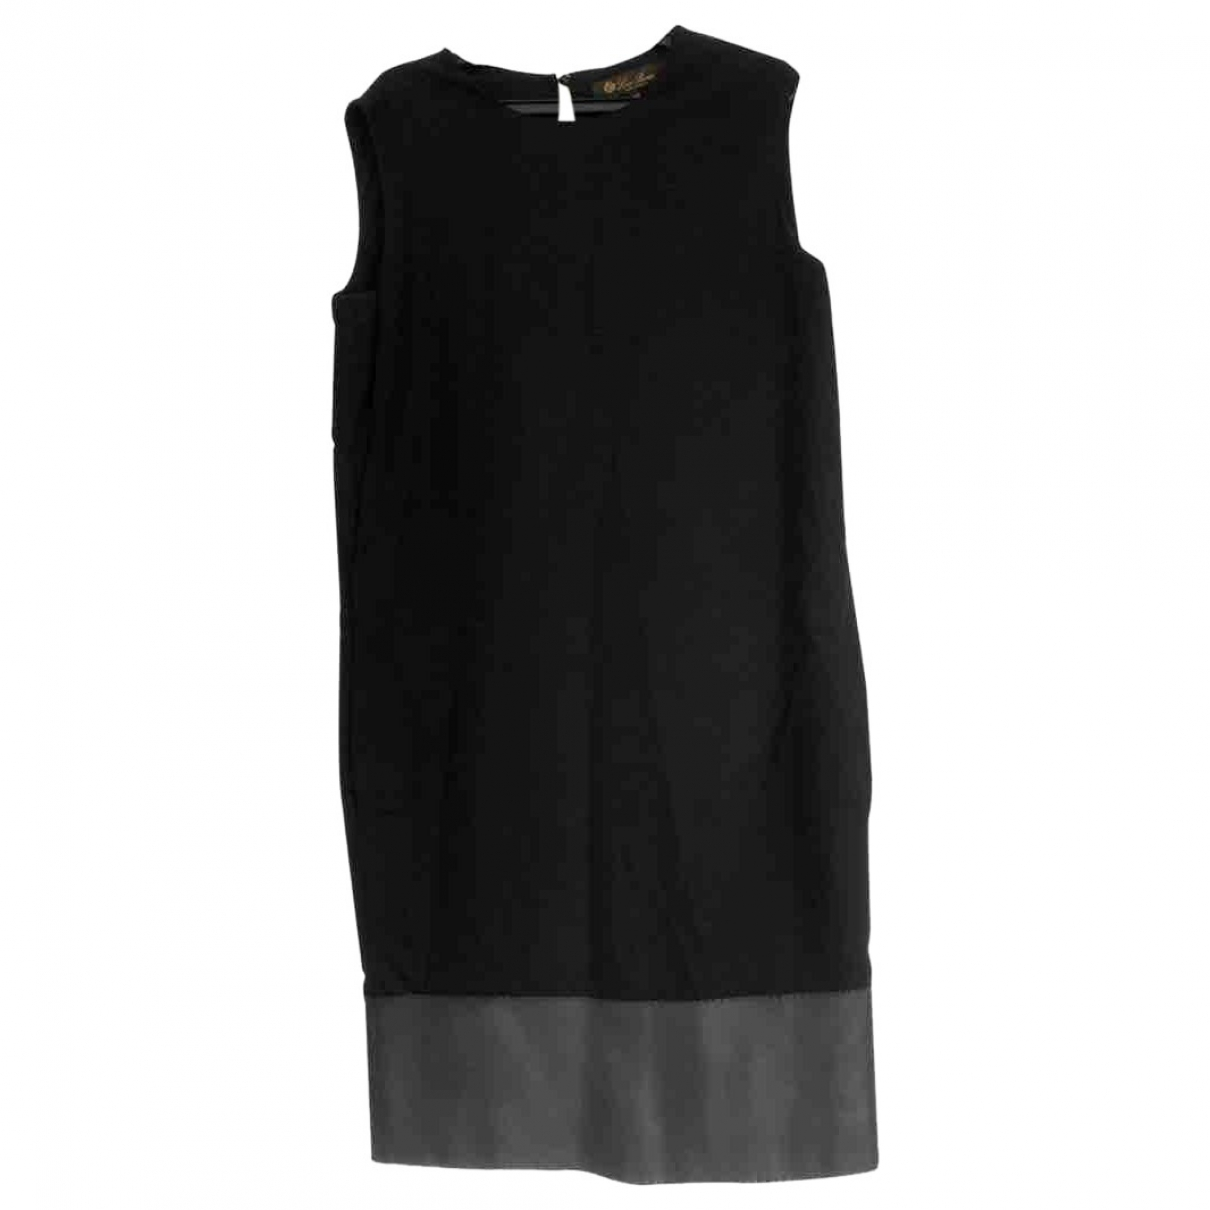 Loro Piana \N Black Cashmere dress for Women 38 IT